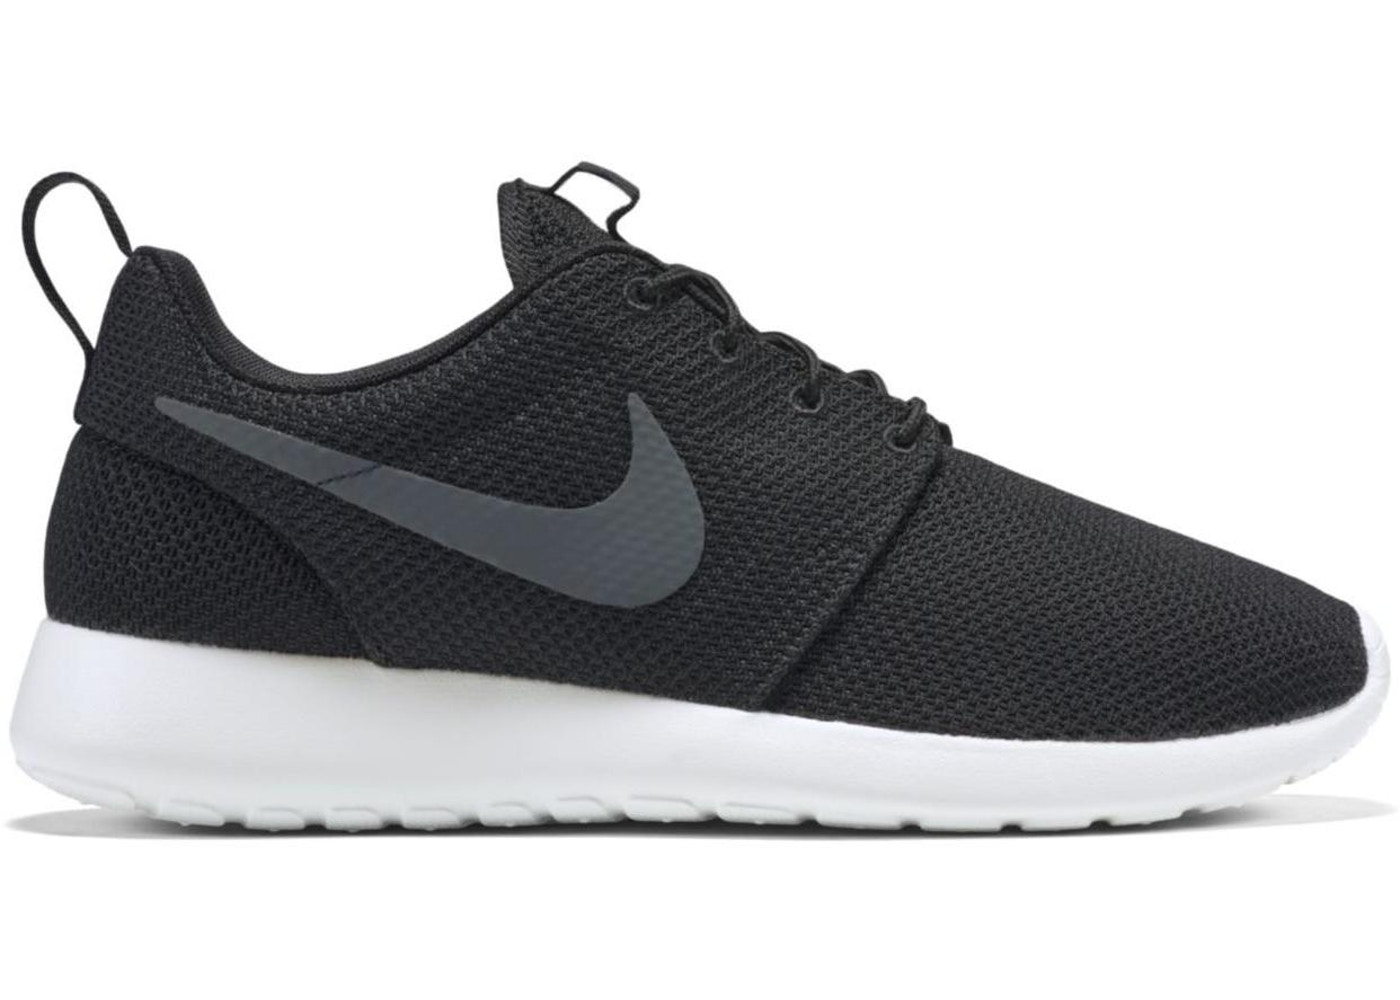 brand new 22e4a dccc4 Nike Roshe Run Black Anthracite Sail